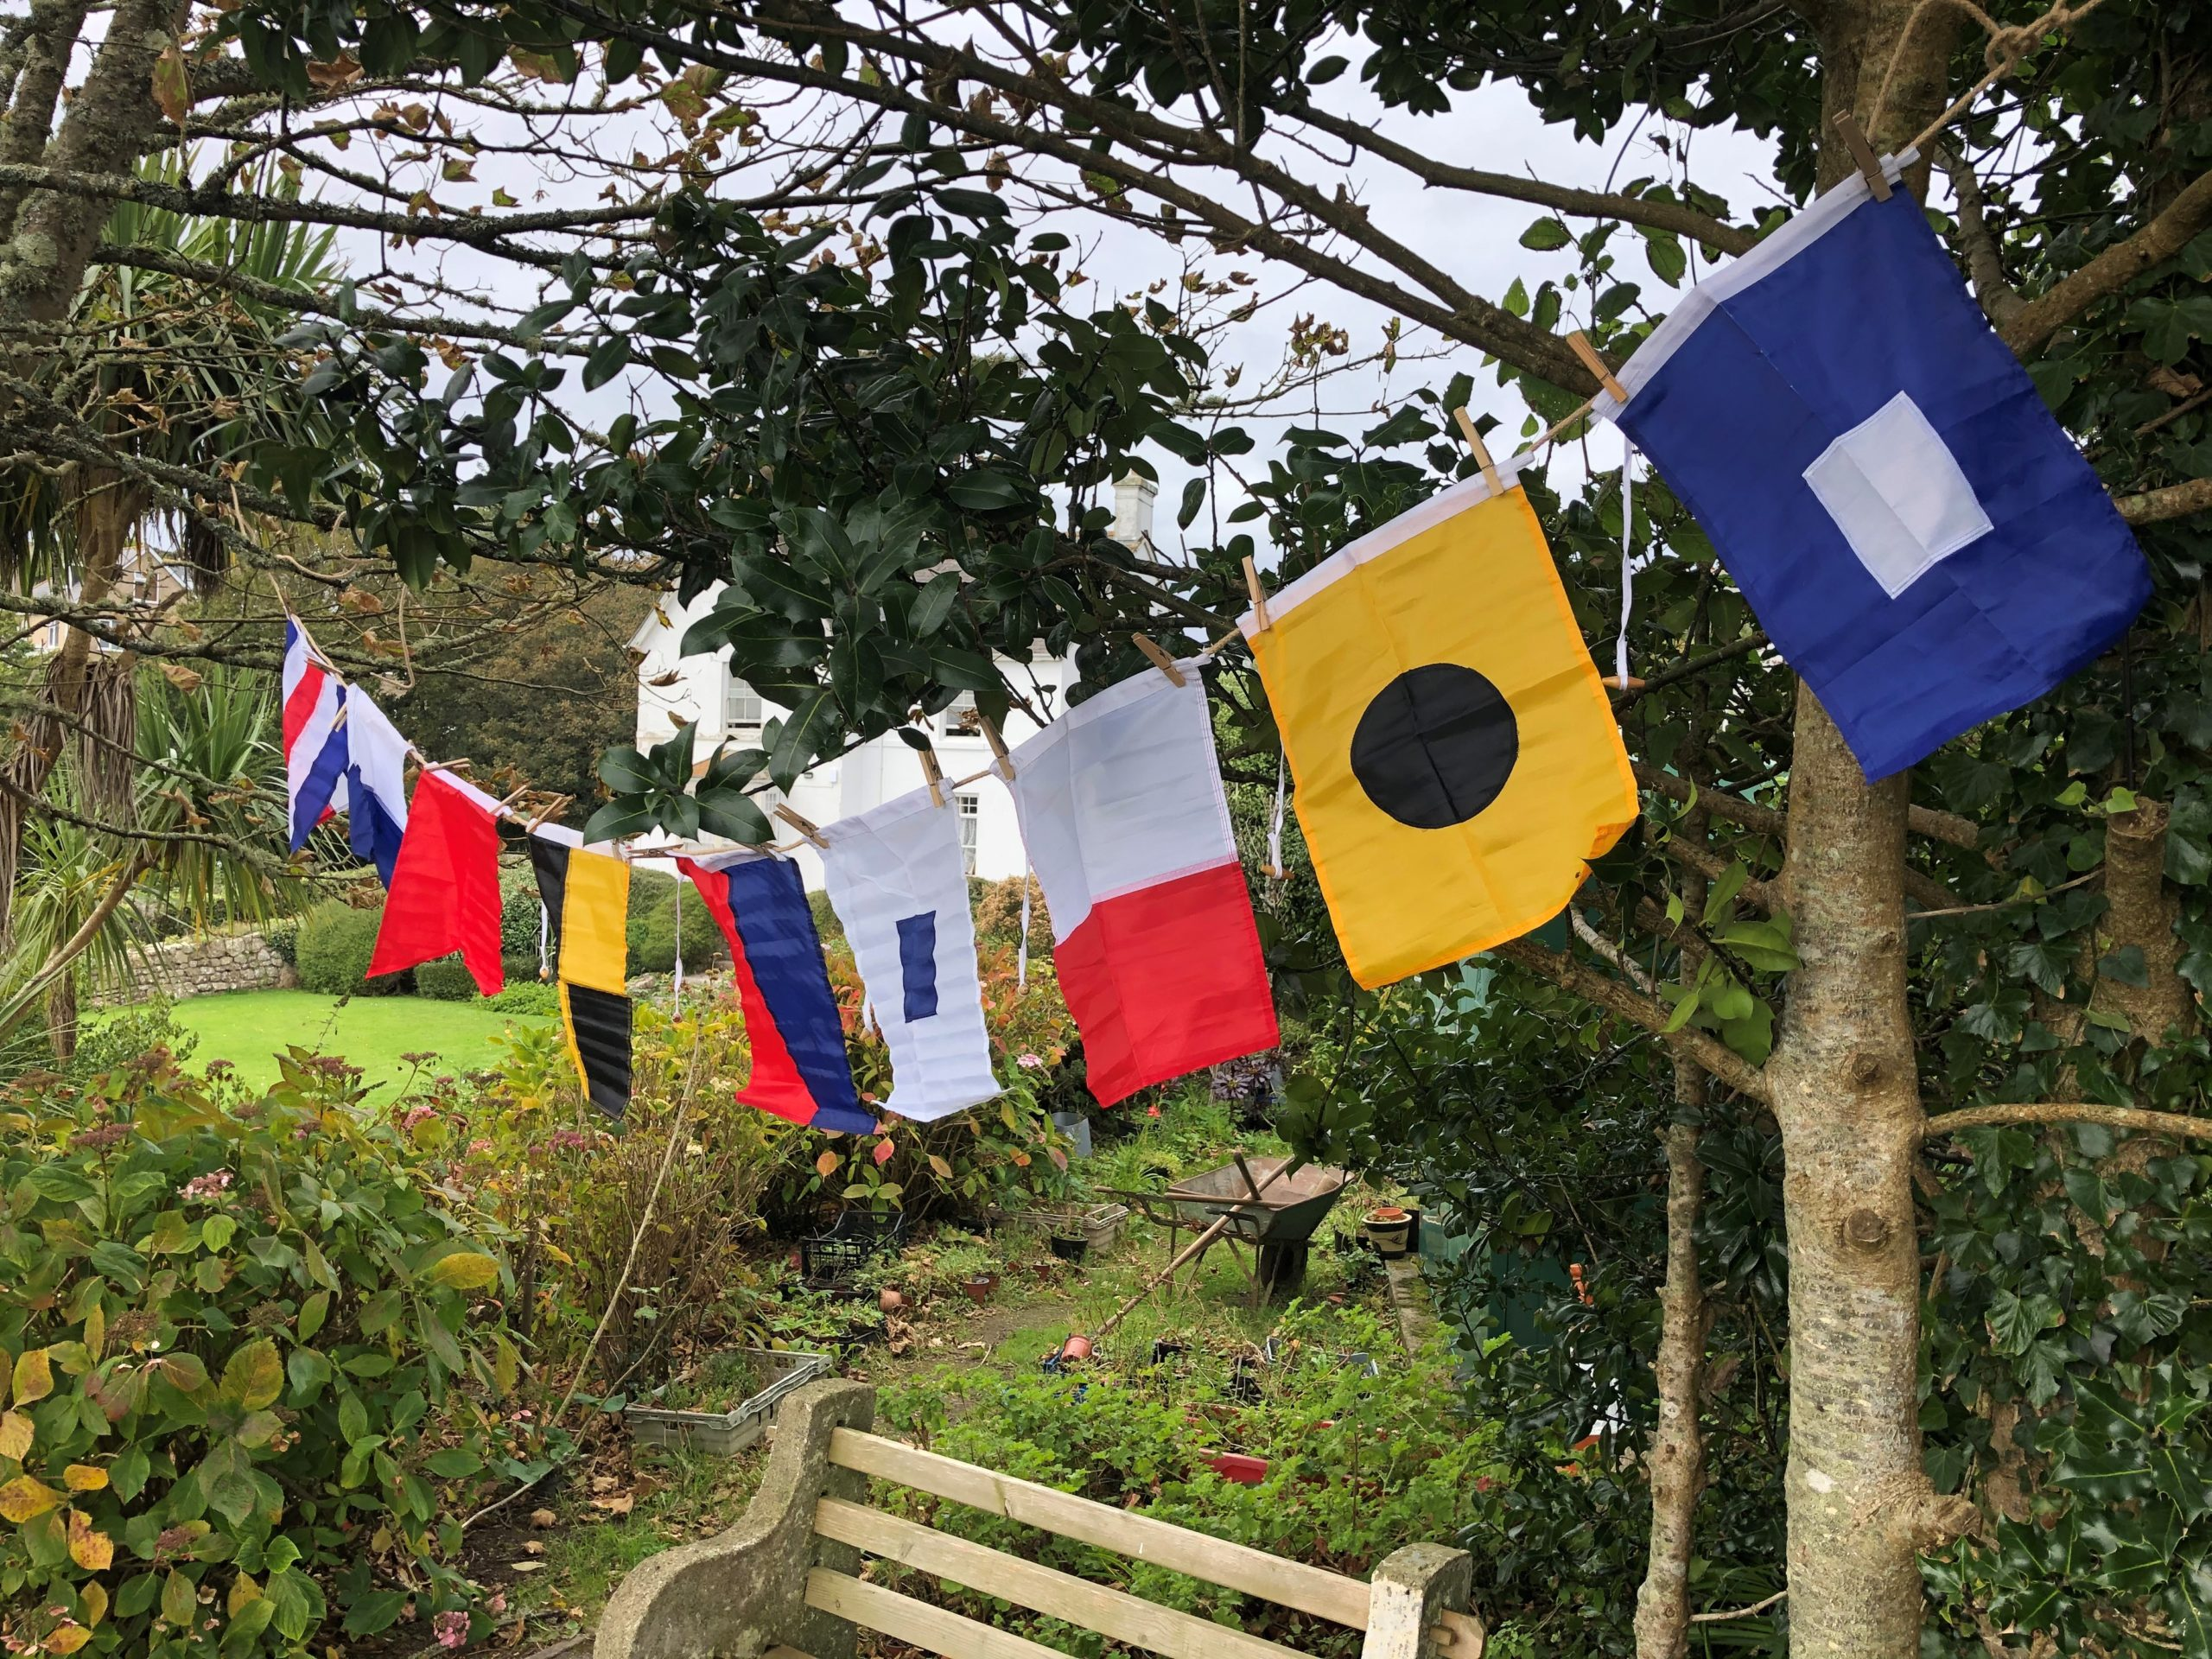 A line of fabric flags hanging in a garden above a wooden bench.